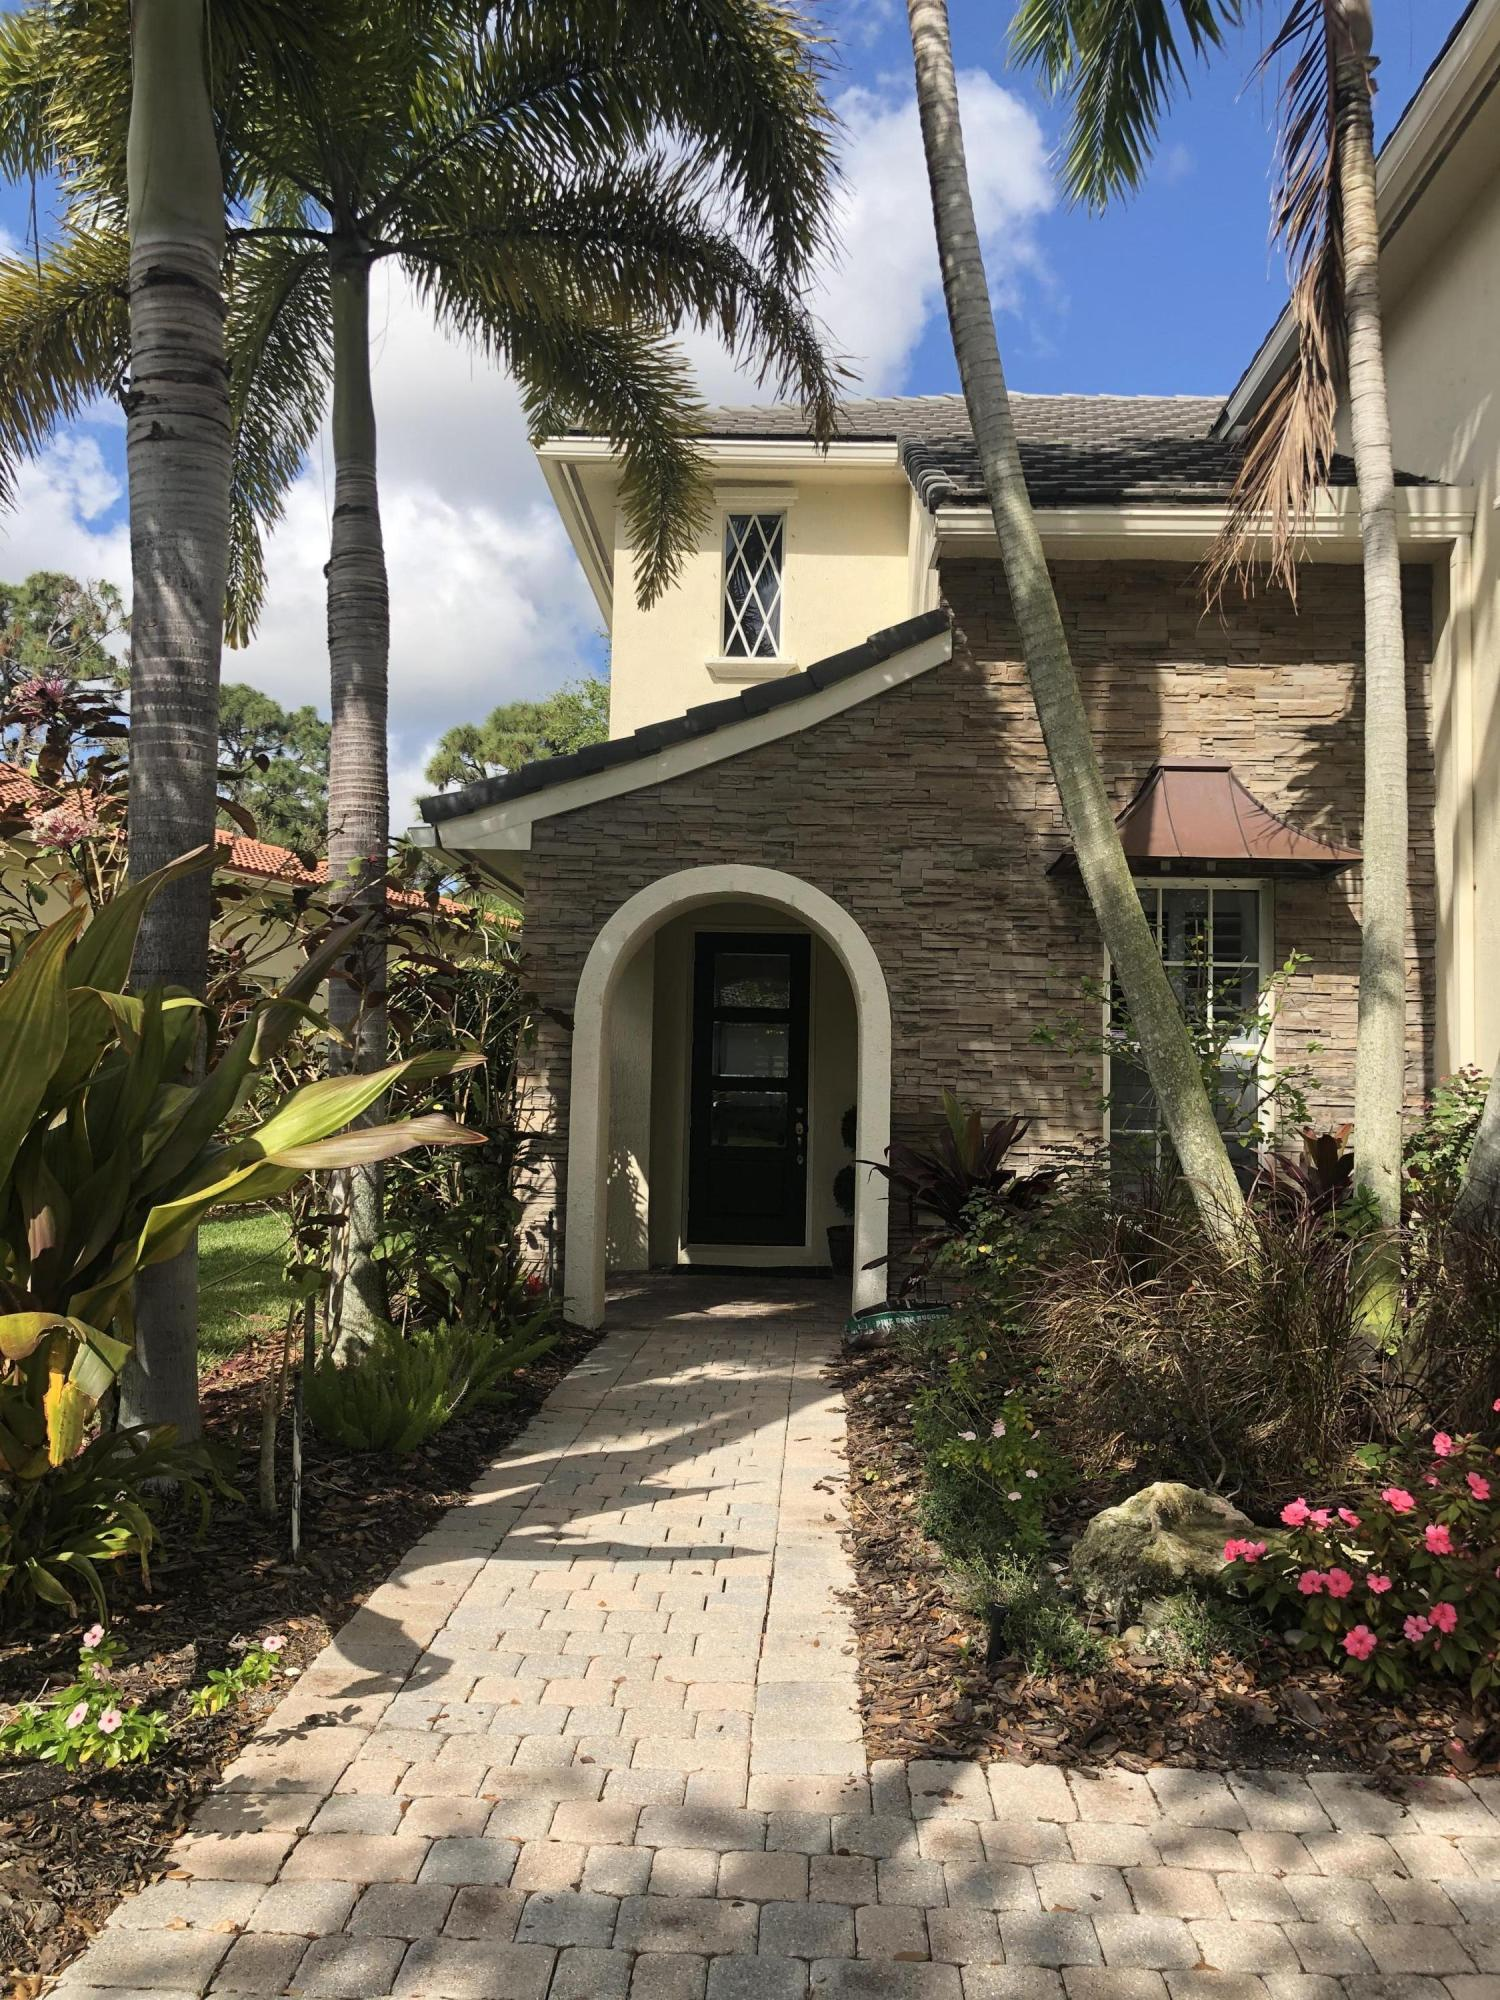 Home for sale in evergrene pcd 6 Palm Beach Gardens Florida